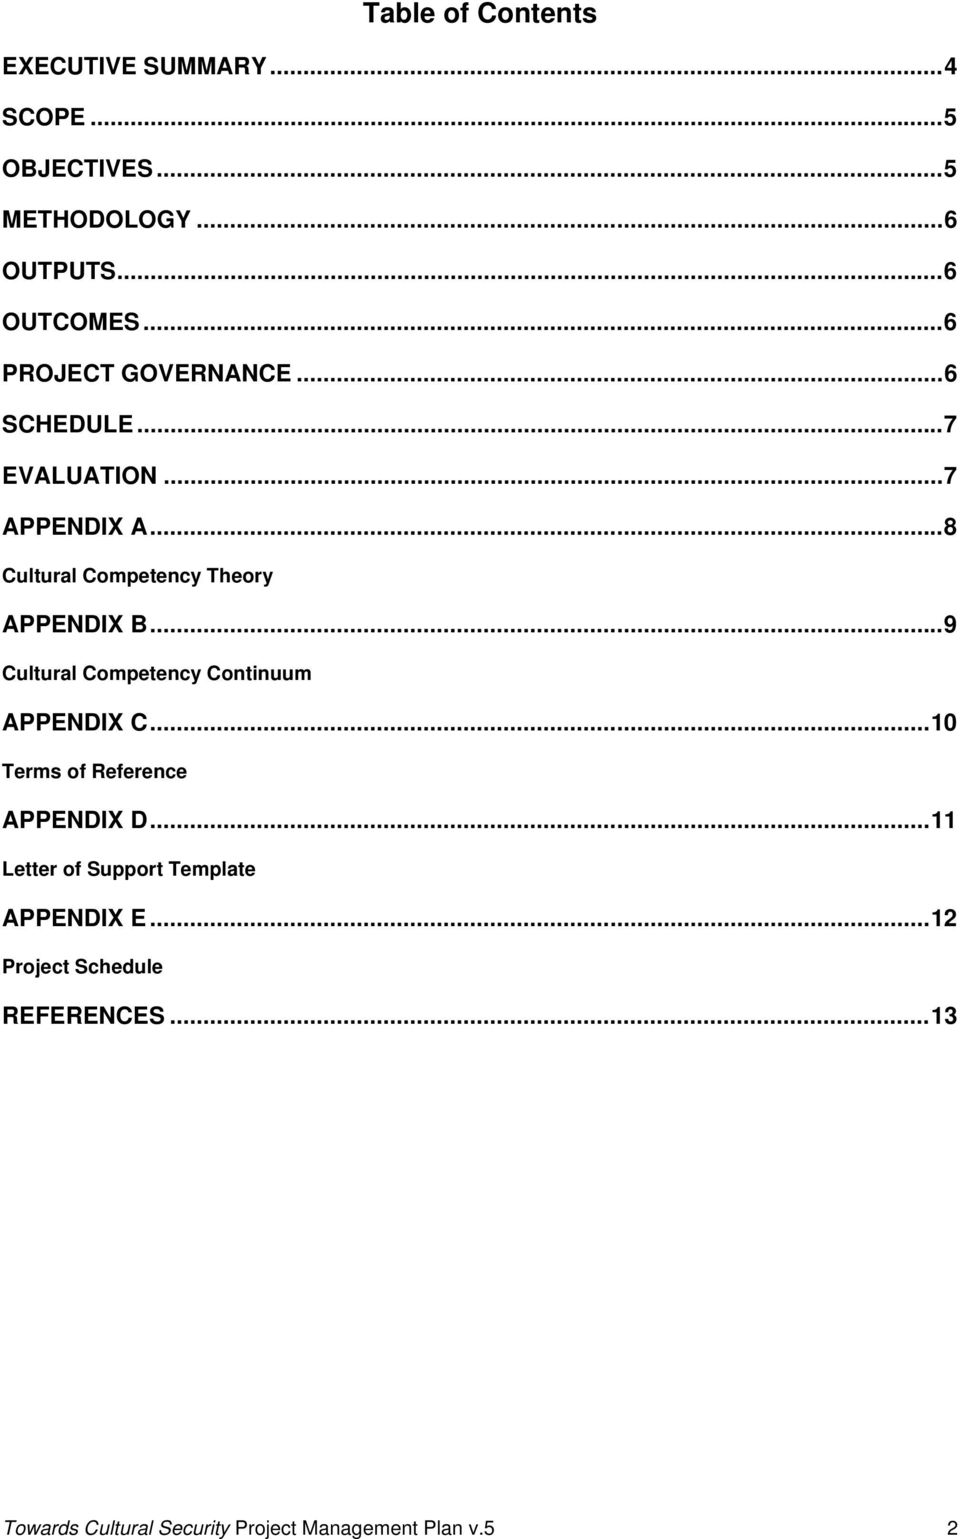 ..9 Cultural Competency Continuum APPENDIX C...10 Terms of Reference APPENDIX D.